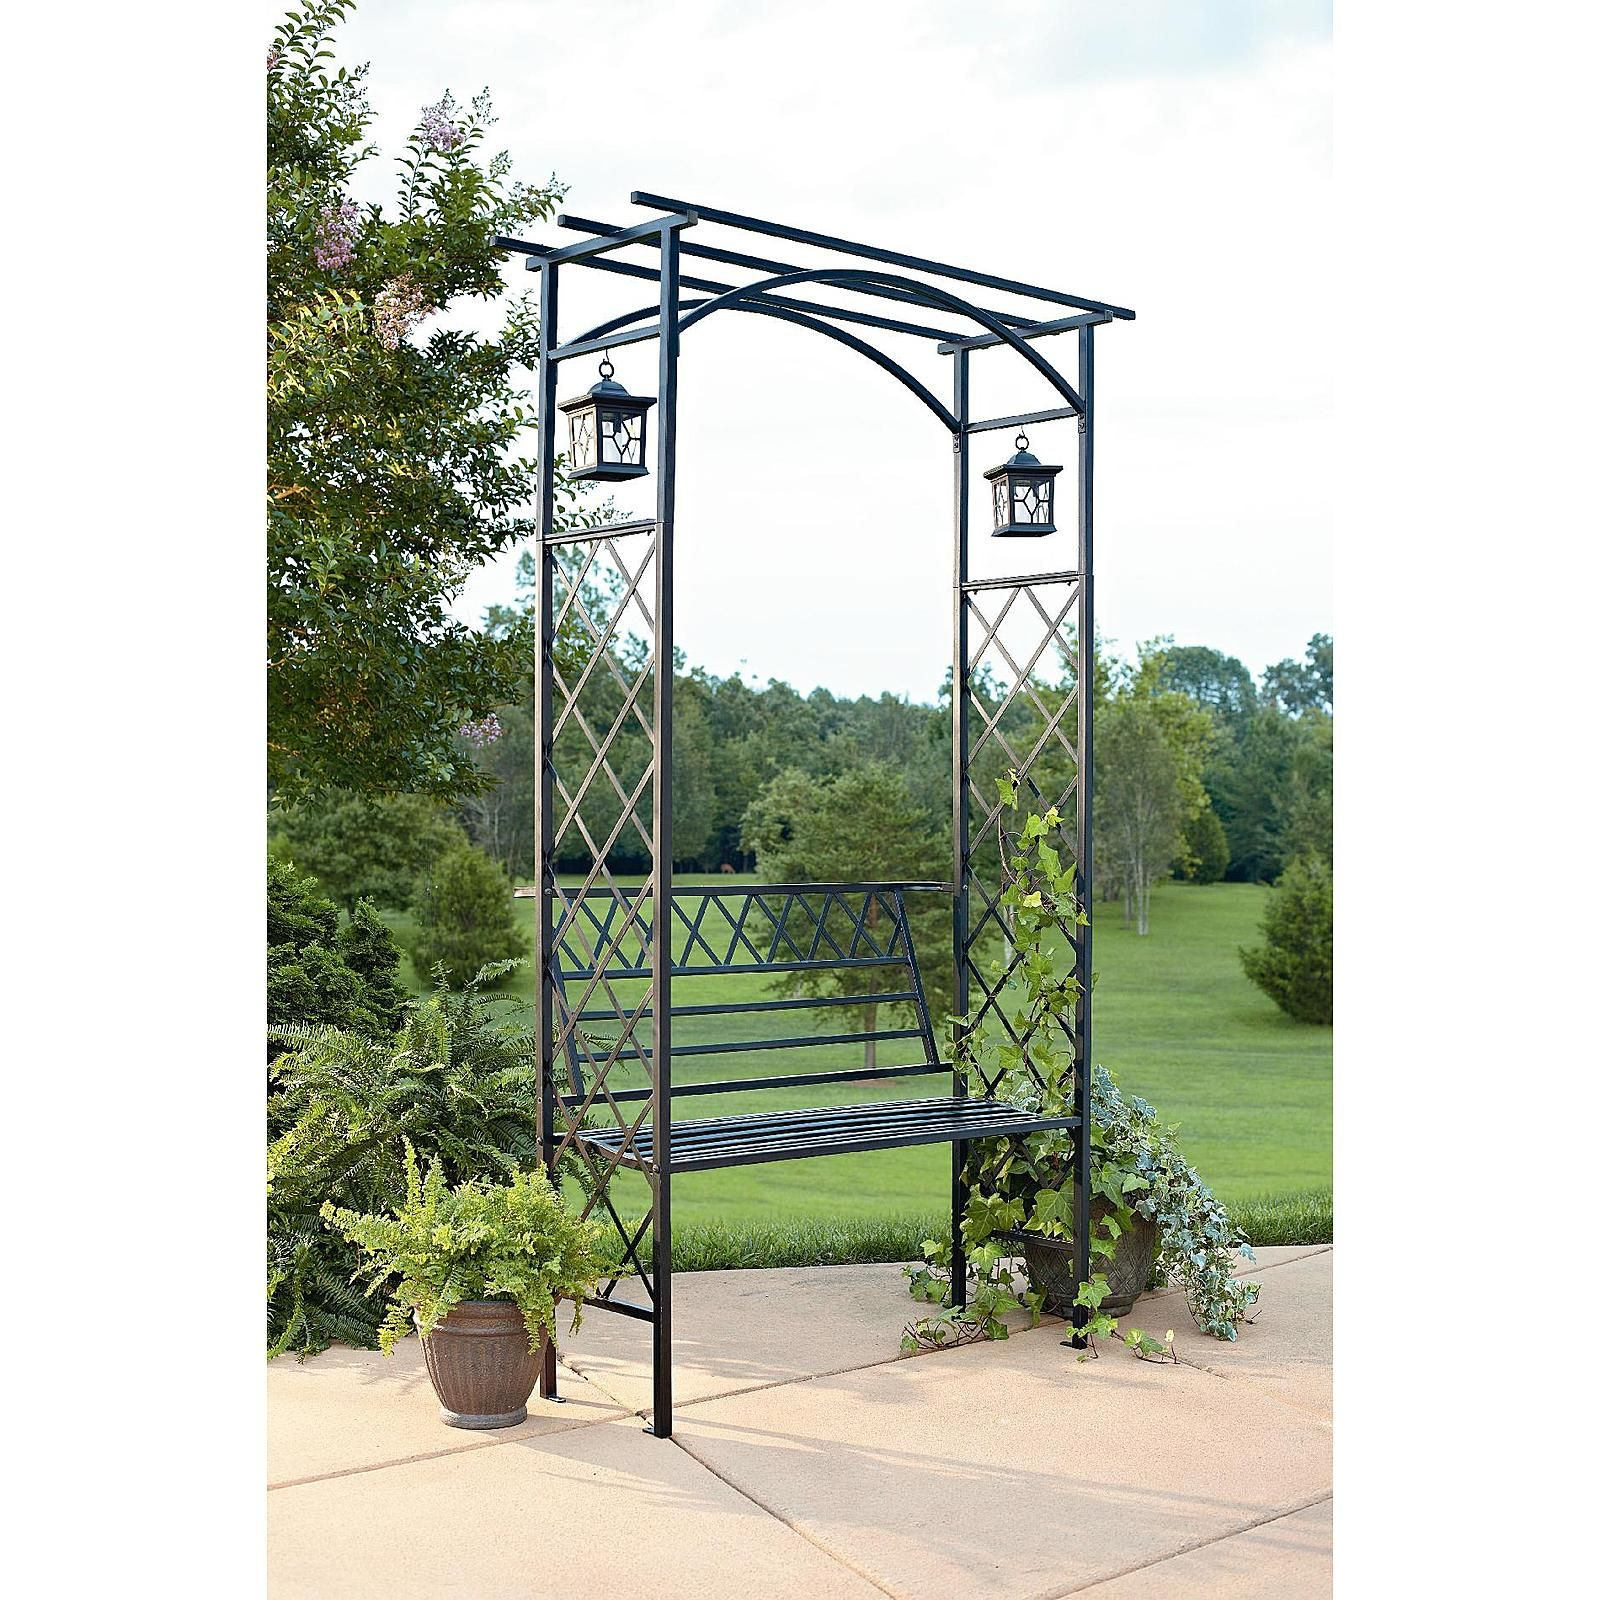 Exceptionnel Garden Oasis Lattice Arbor With Bench And Two Lanterns   Outdoor Living    Outdoor Decor